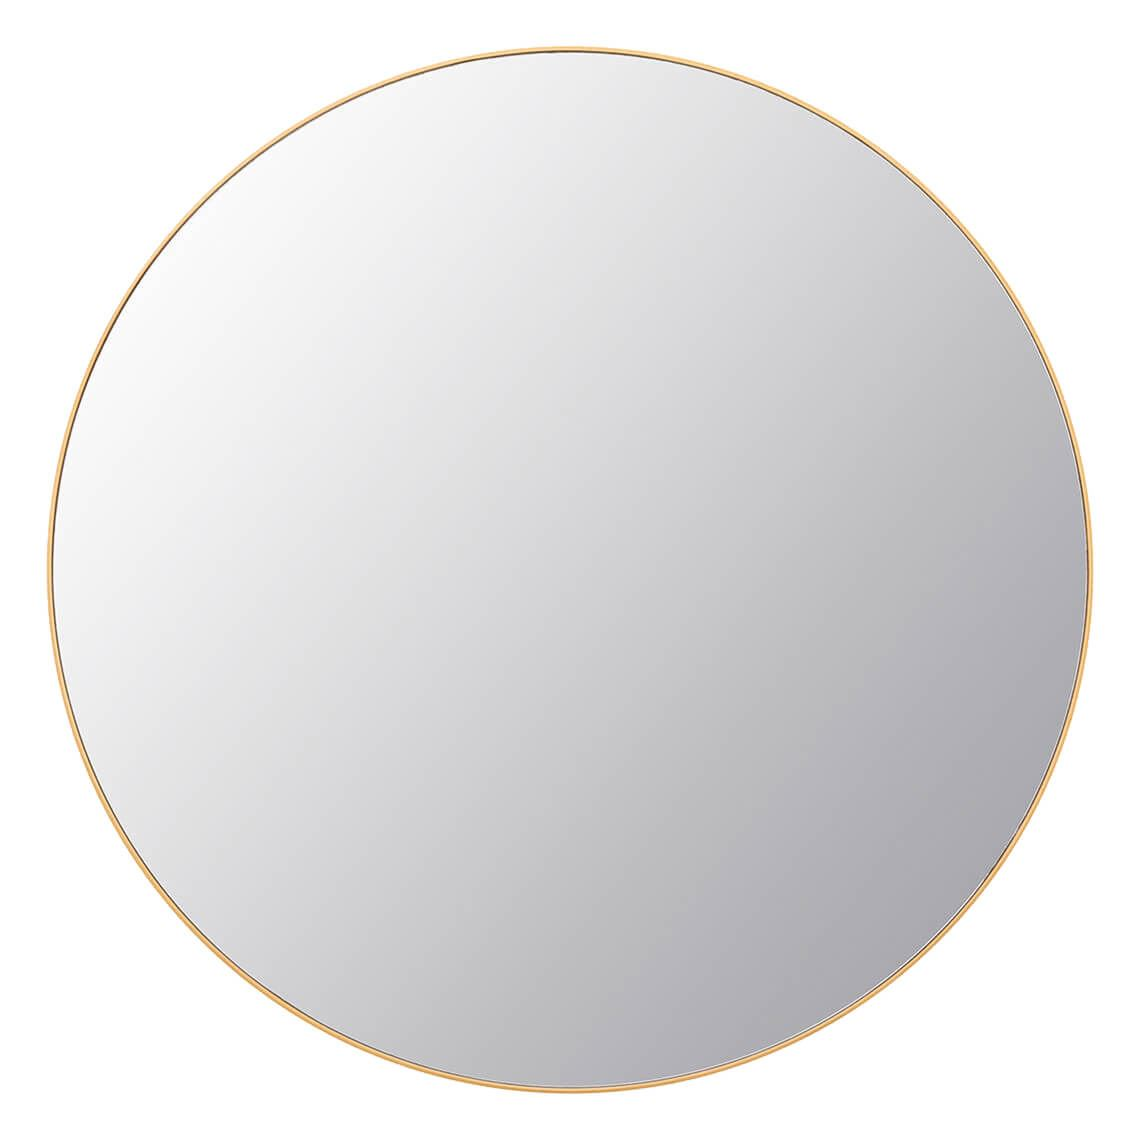 Dylan Mirror Colour Size W 120cm x D 2cm x H 120cm in Gold Wood/Mirrored Glass Freedom by Freedom, a Mirrors for sale on Style Sourcebook